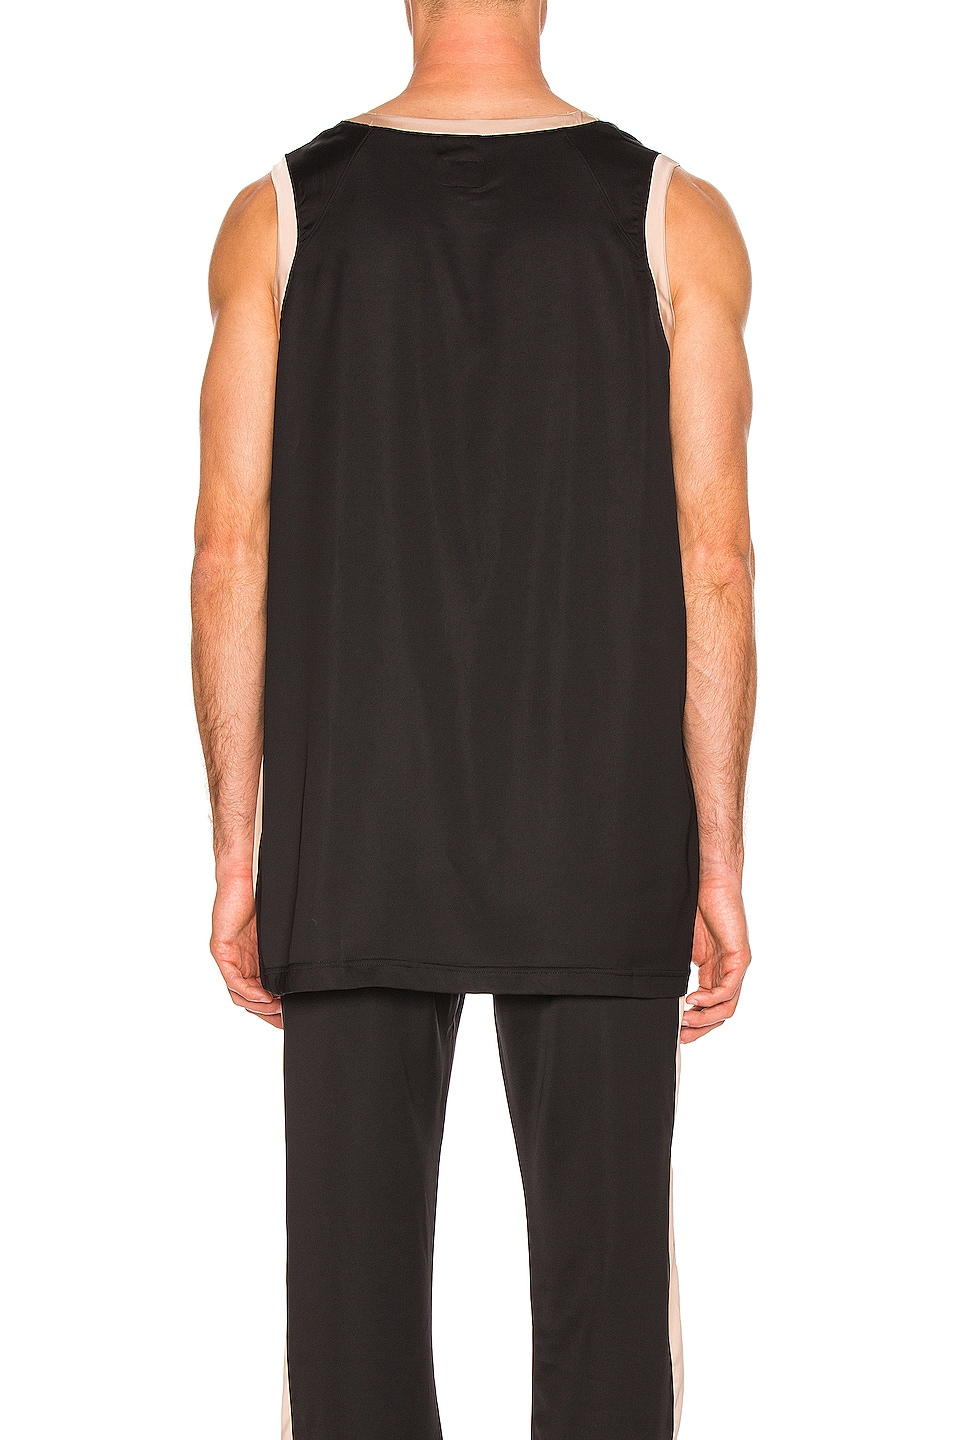 Image 4 of Needles Papillion Embroidered Side Line Tank Top in Black